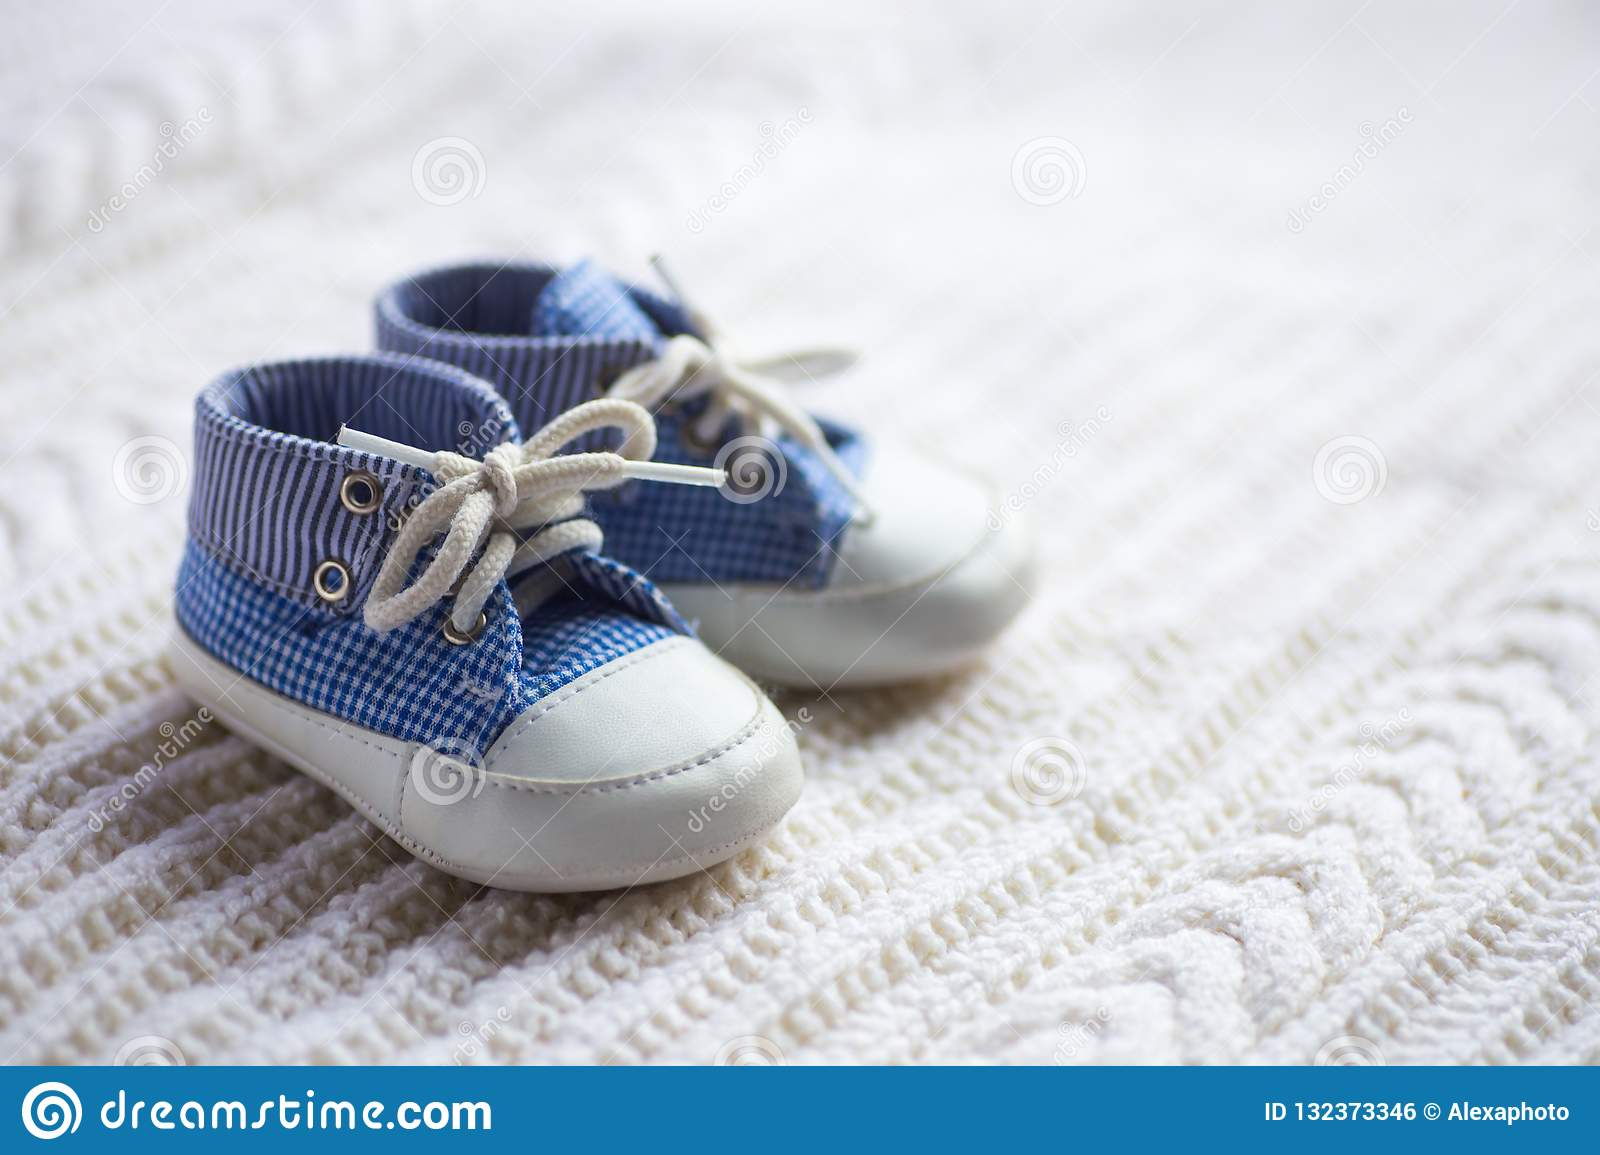 f503e00c025 Cute Baby Boy Blue Sneakers On White Knitted Fabric Stock Photo ...